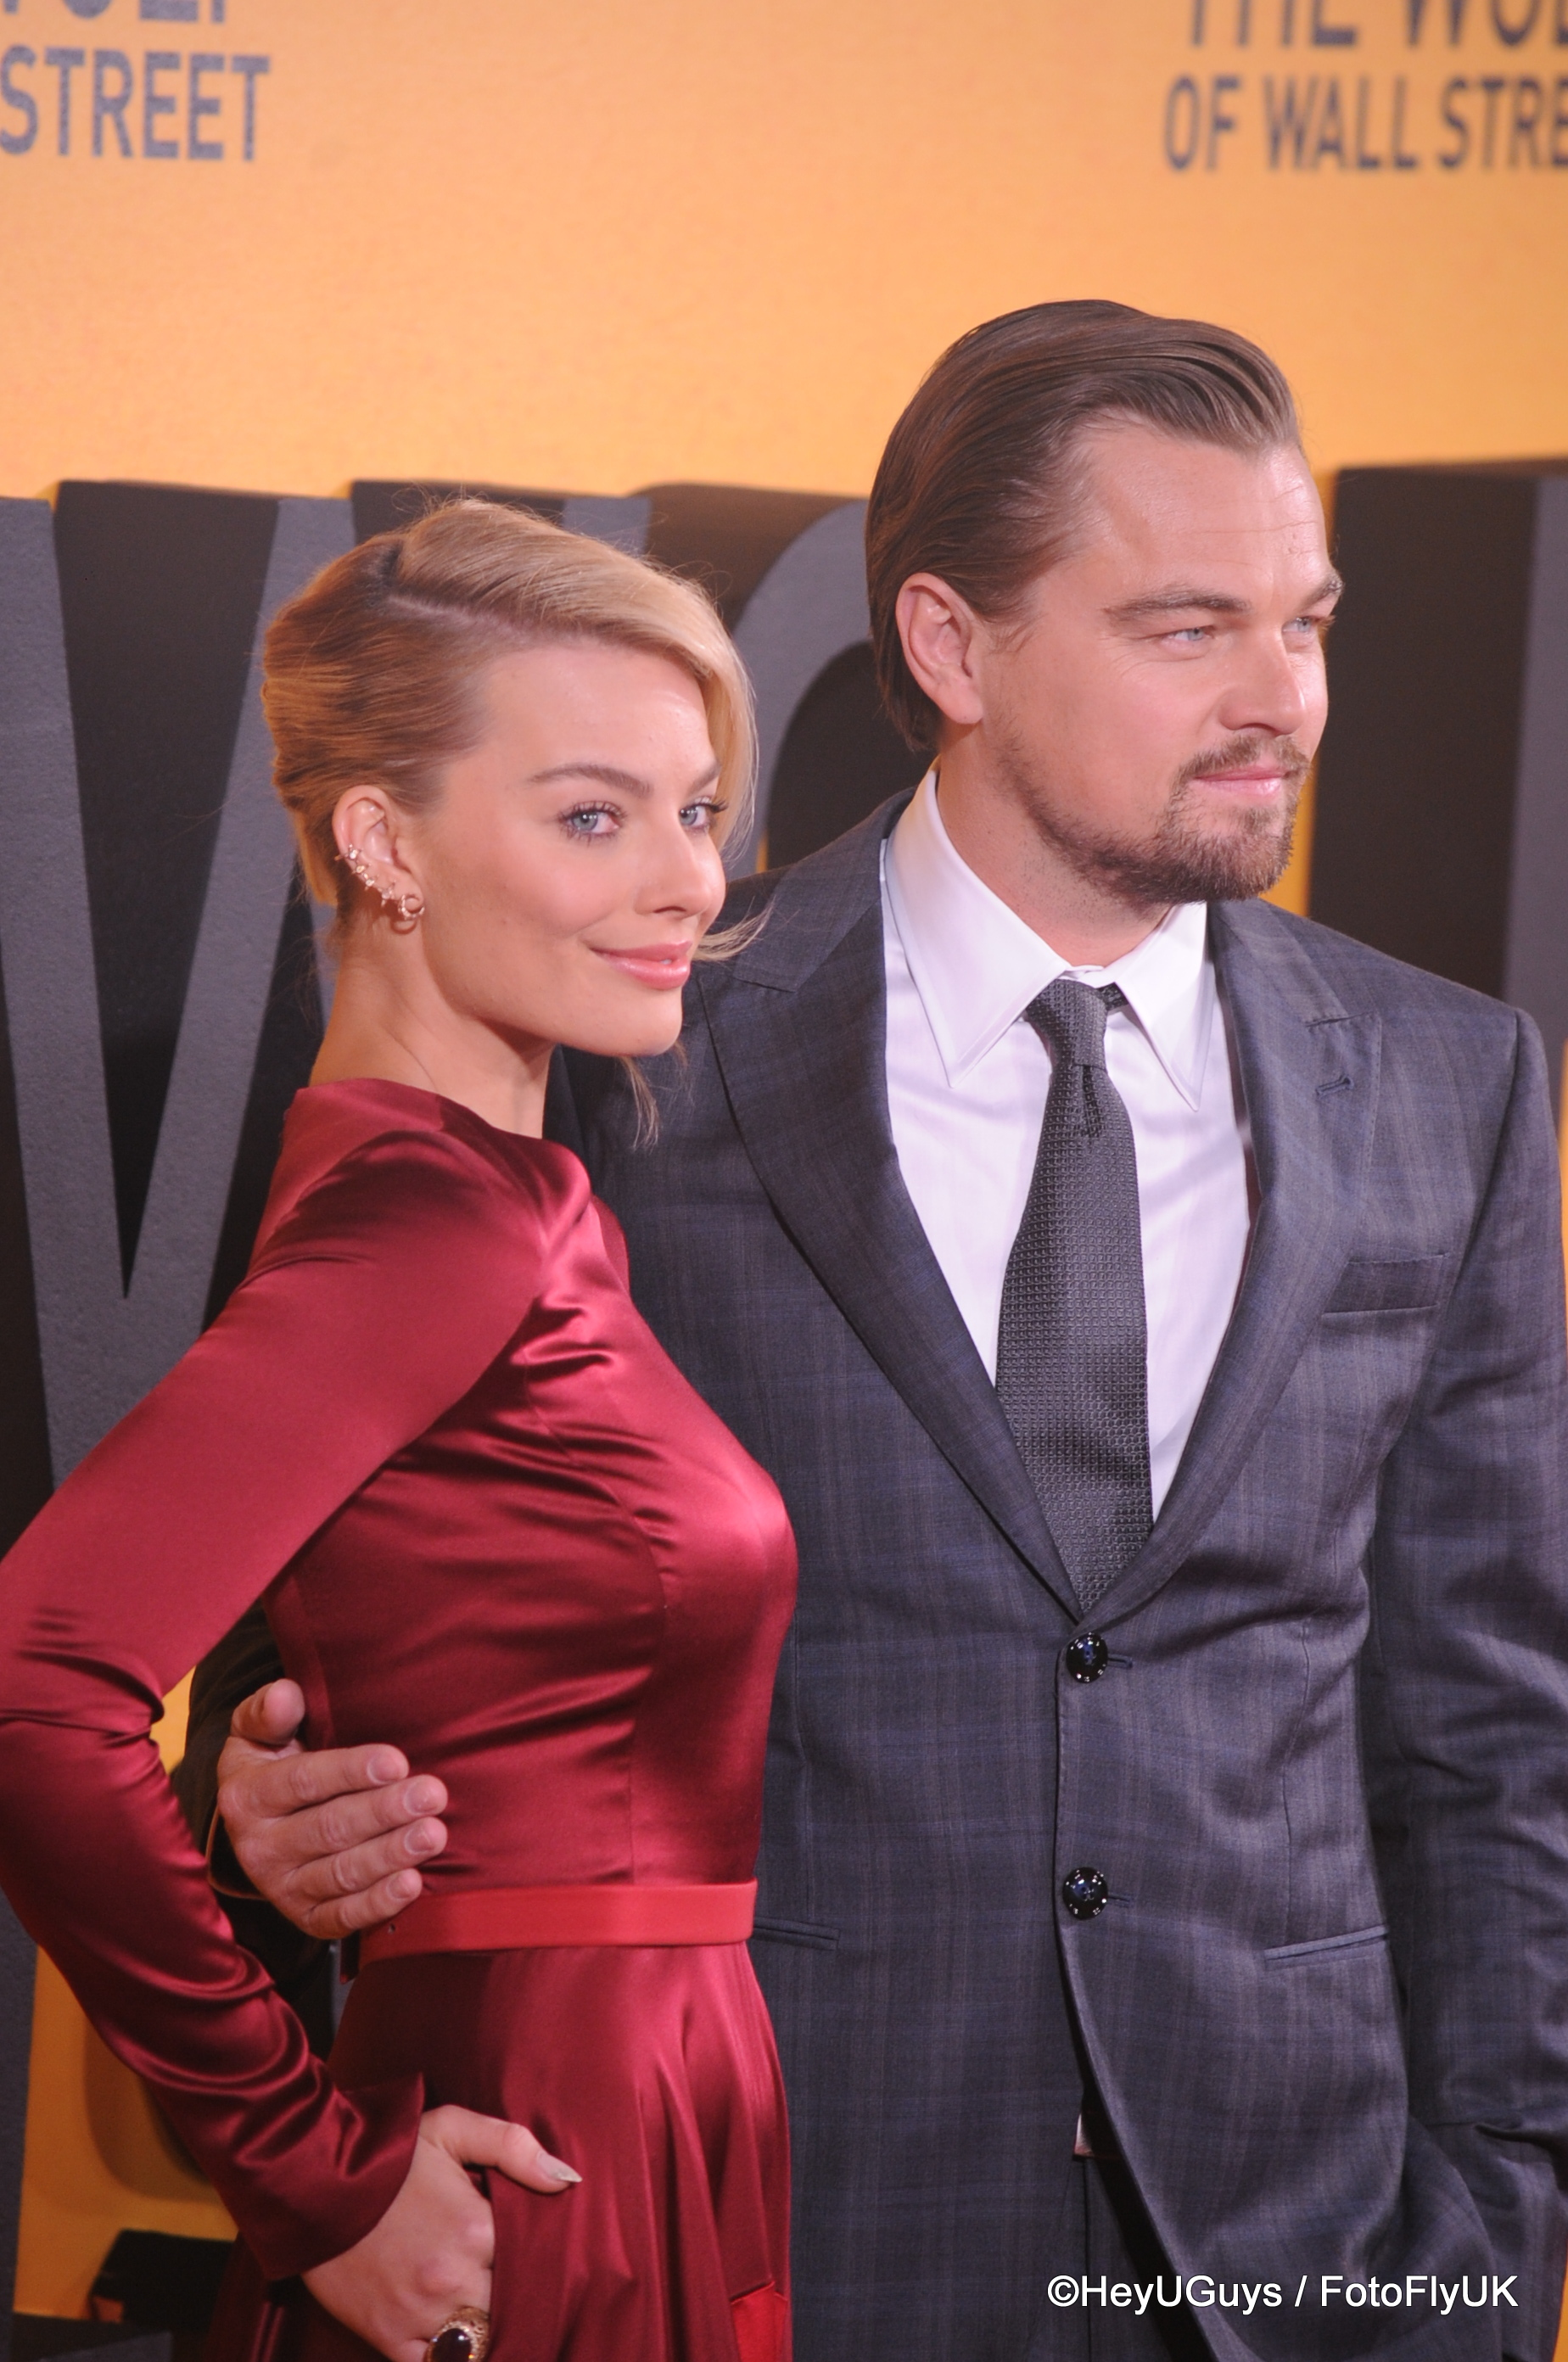 Leonardo Di Caprio And Margot Robbieat The Wolf Of Wall